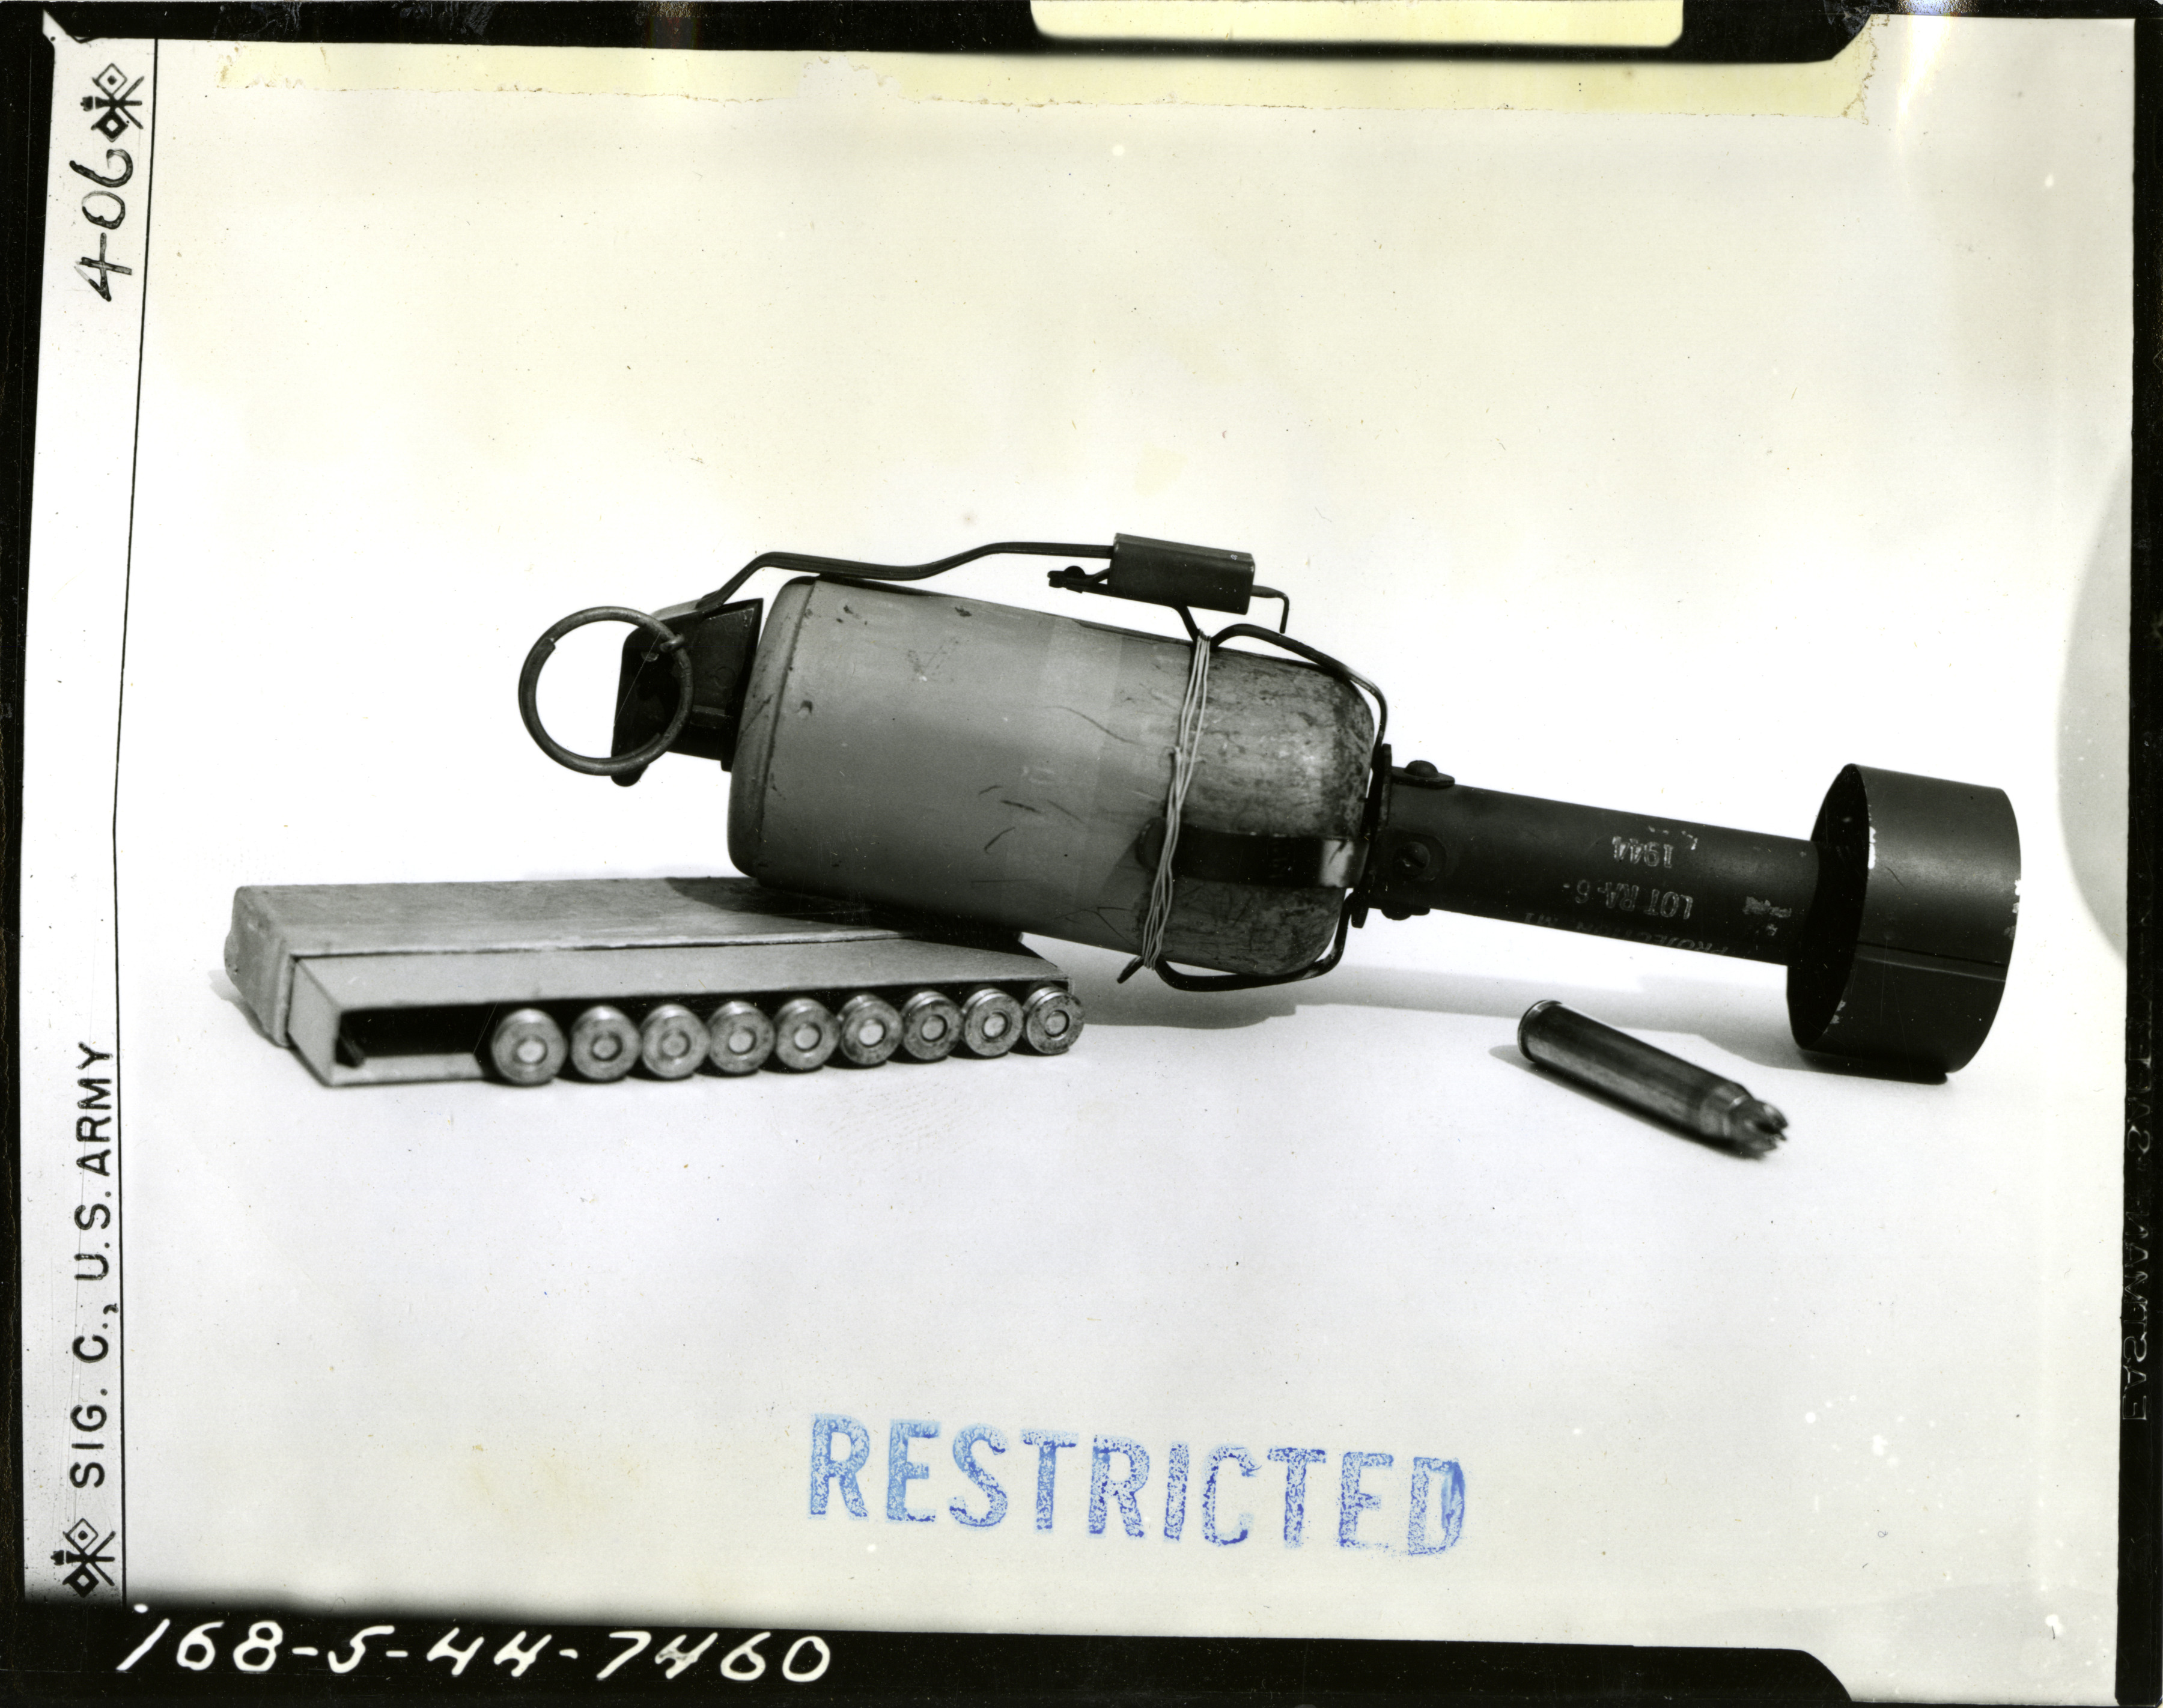 A fragmentation grenade launcher adapted for use with a